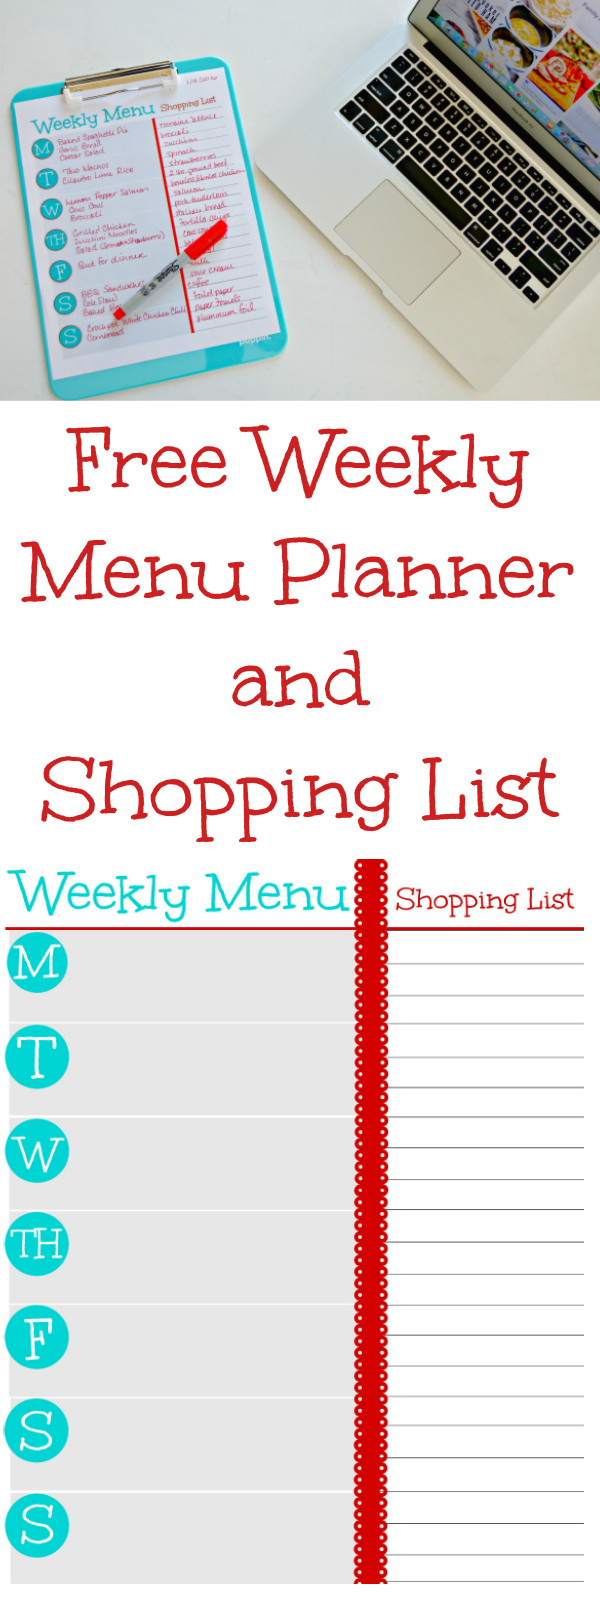 This Free Printable Weekly Menu Planner and Grocery Shopping List will help you plan your family meals and stick to that plan. The added shopping list is a great way to make sure you don't forget anything you need at the grocery for your weekly meals!